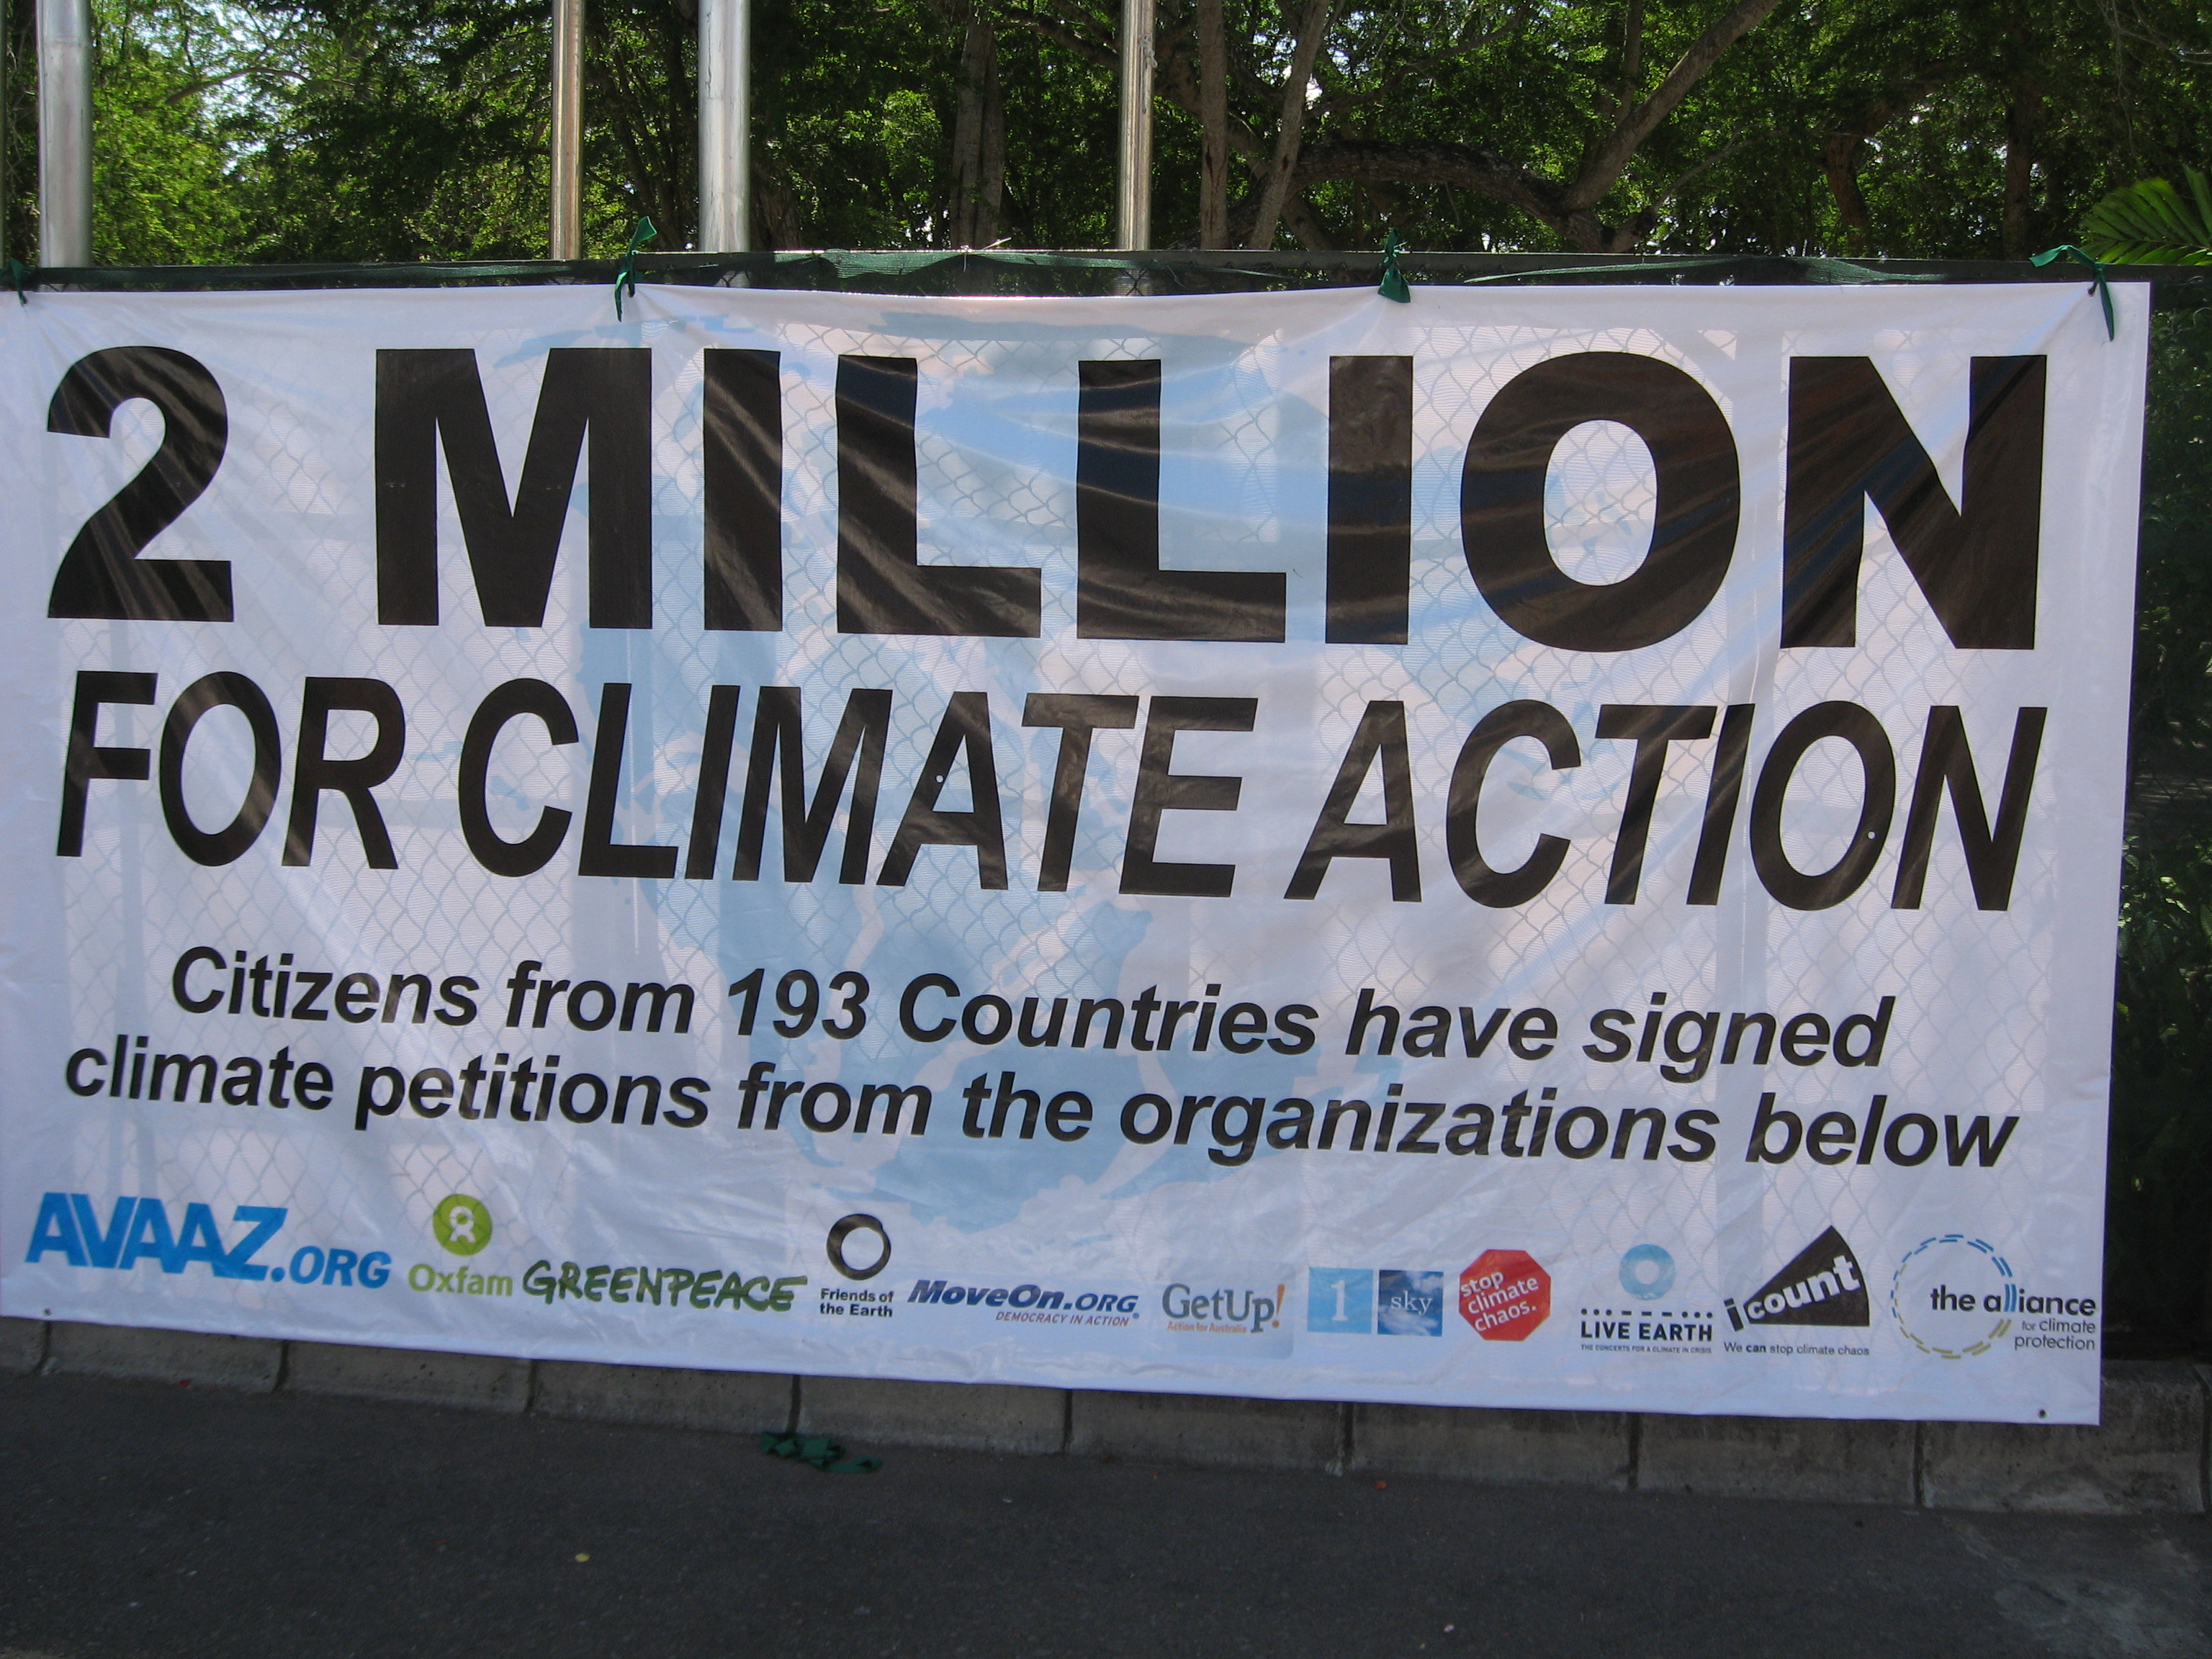 2 Million for Climate Action